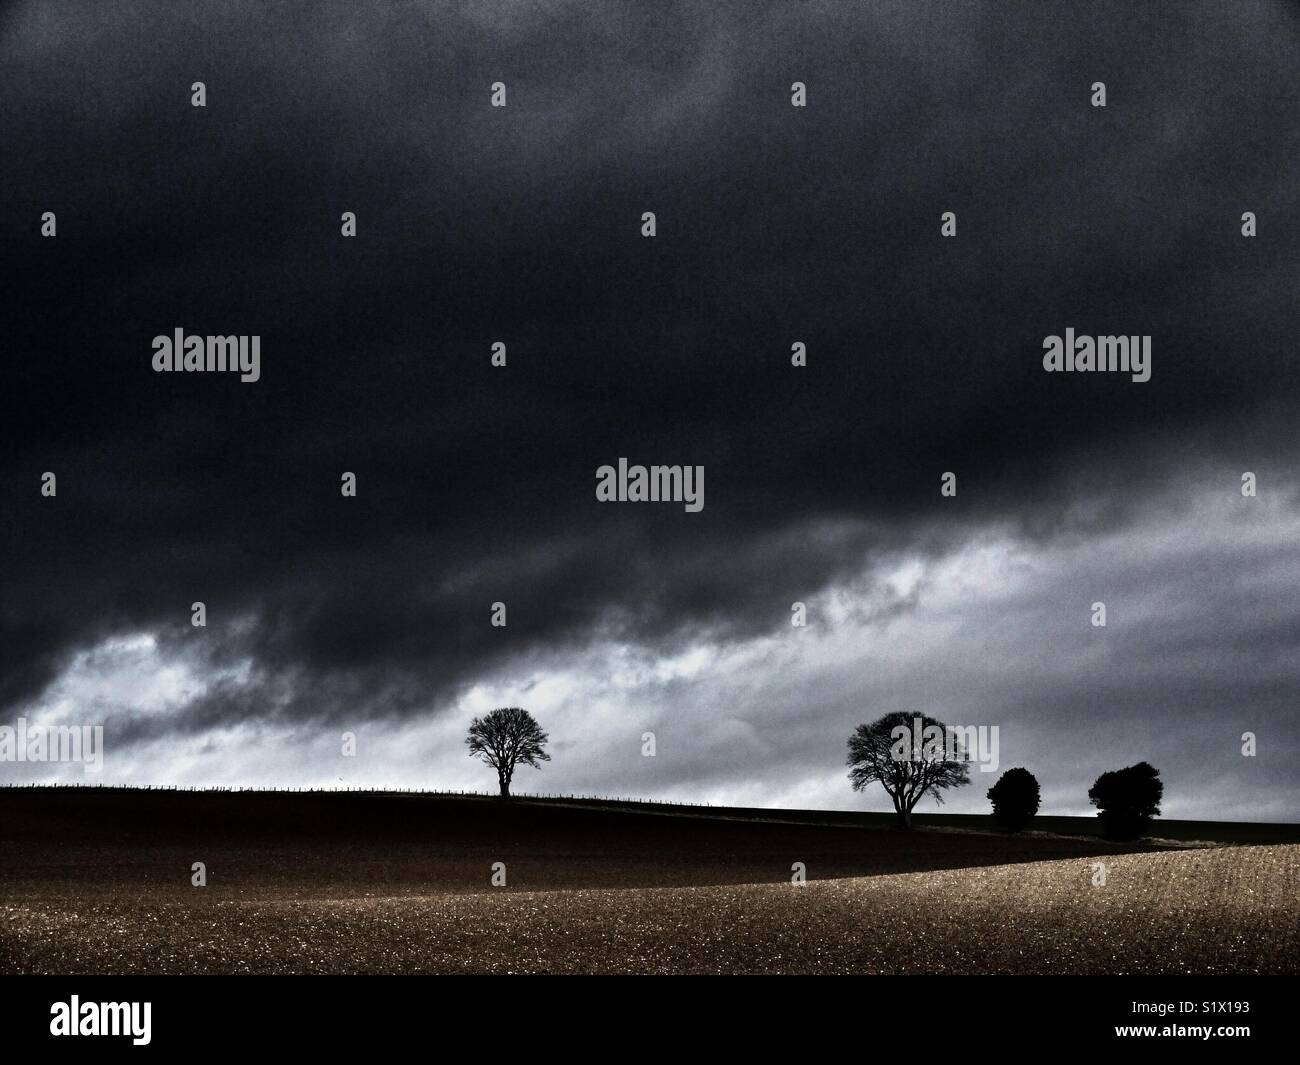 Trees in a field with dark stormy sky, East coast of Scotland, Angus. Stock Photo